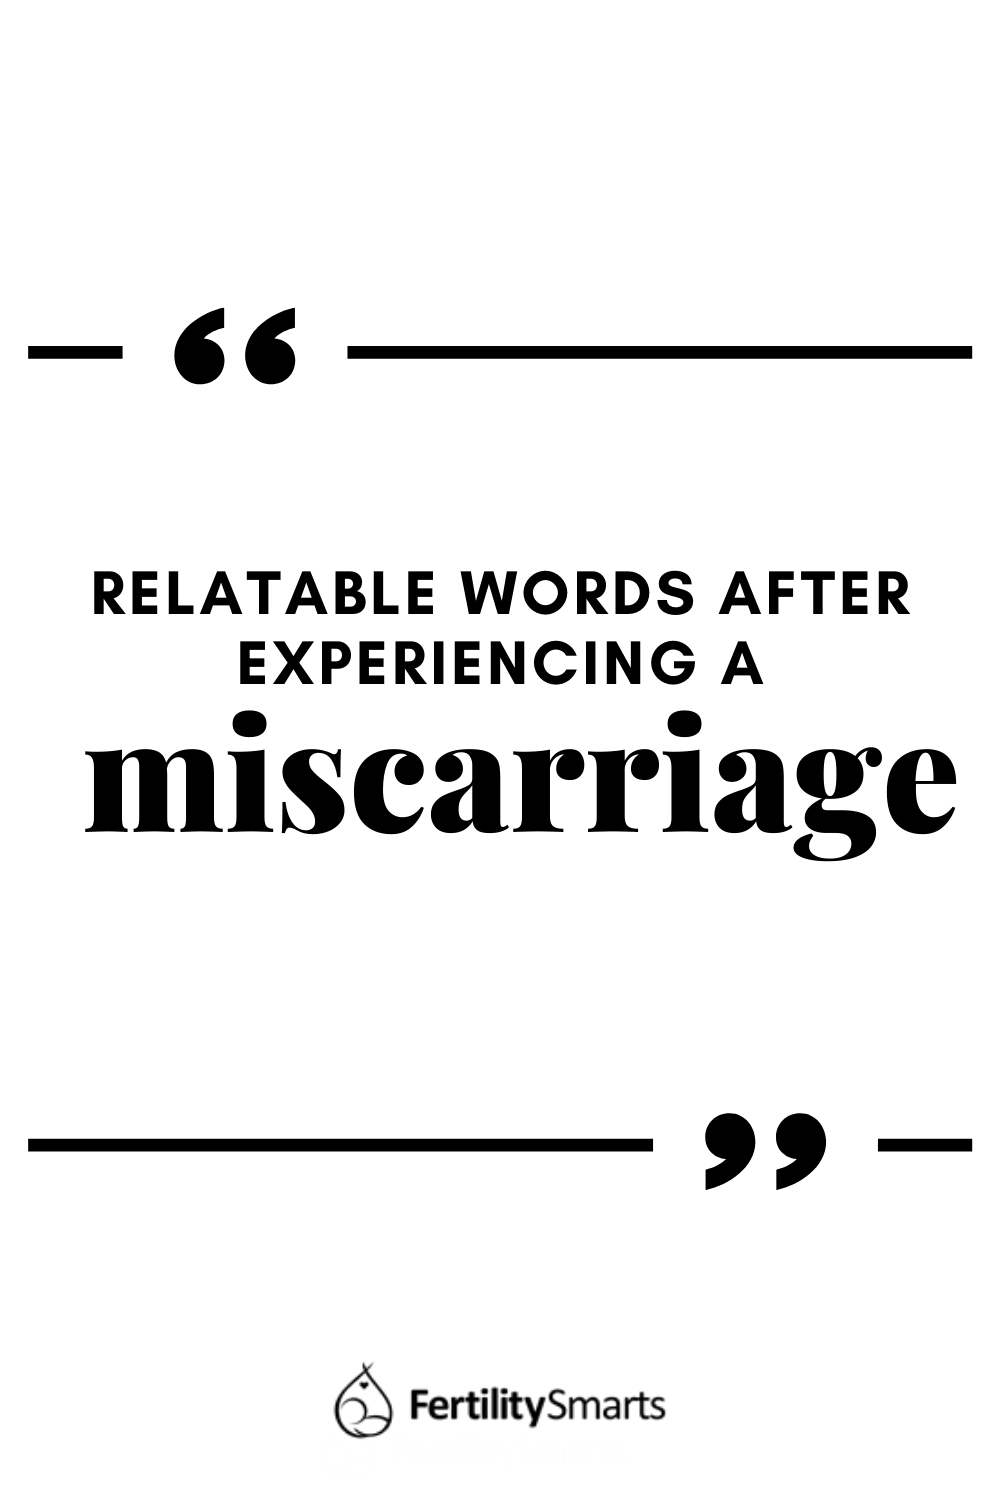 Text: Relatable Words After Experiencing A Miscarriage